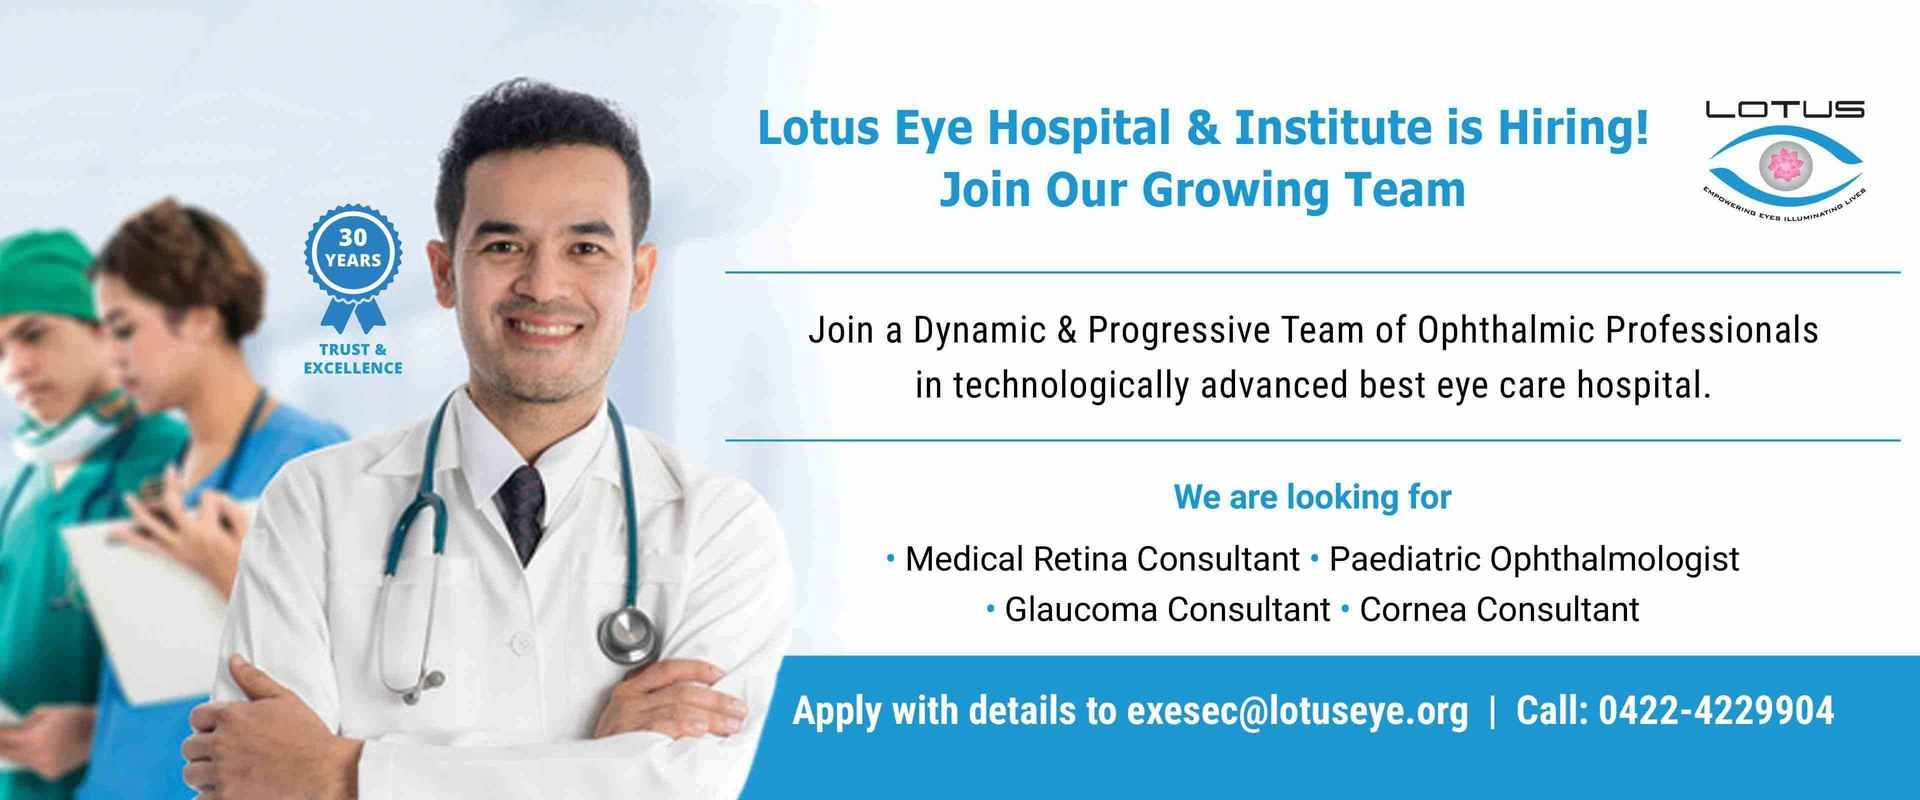 Best Eye Hospital in India | Lotus Eye Hospital and